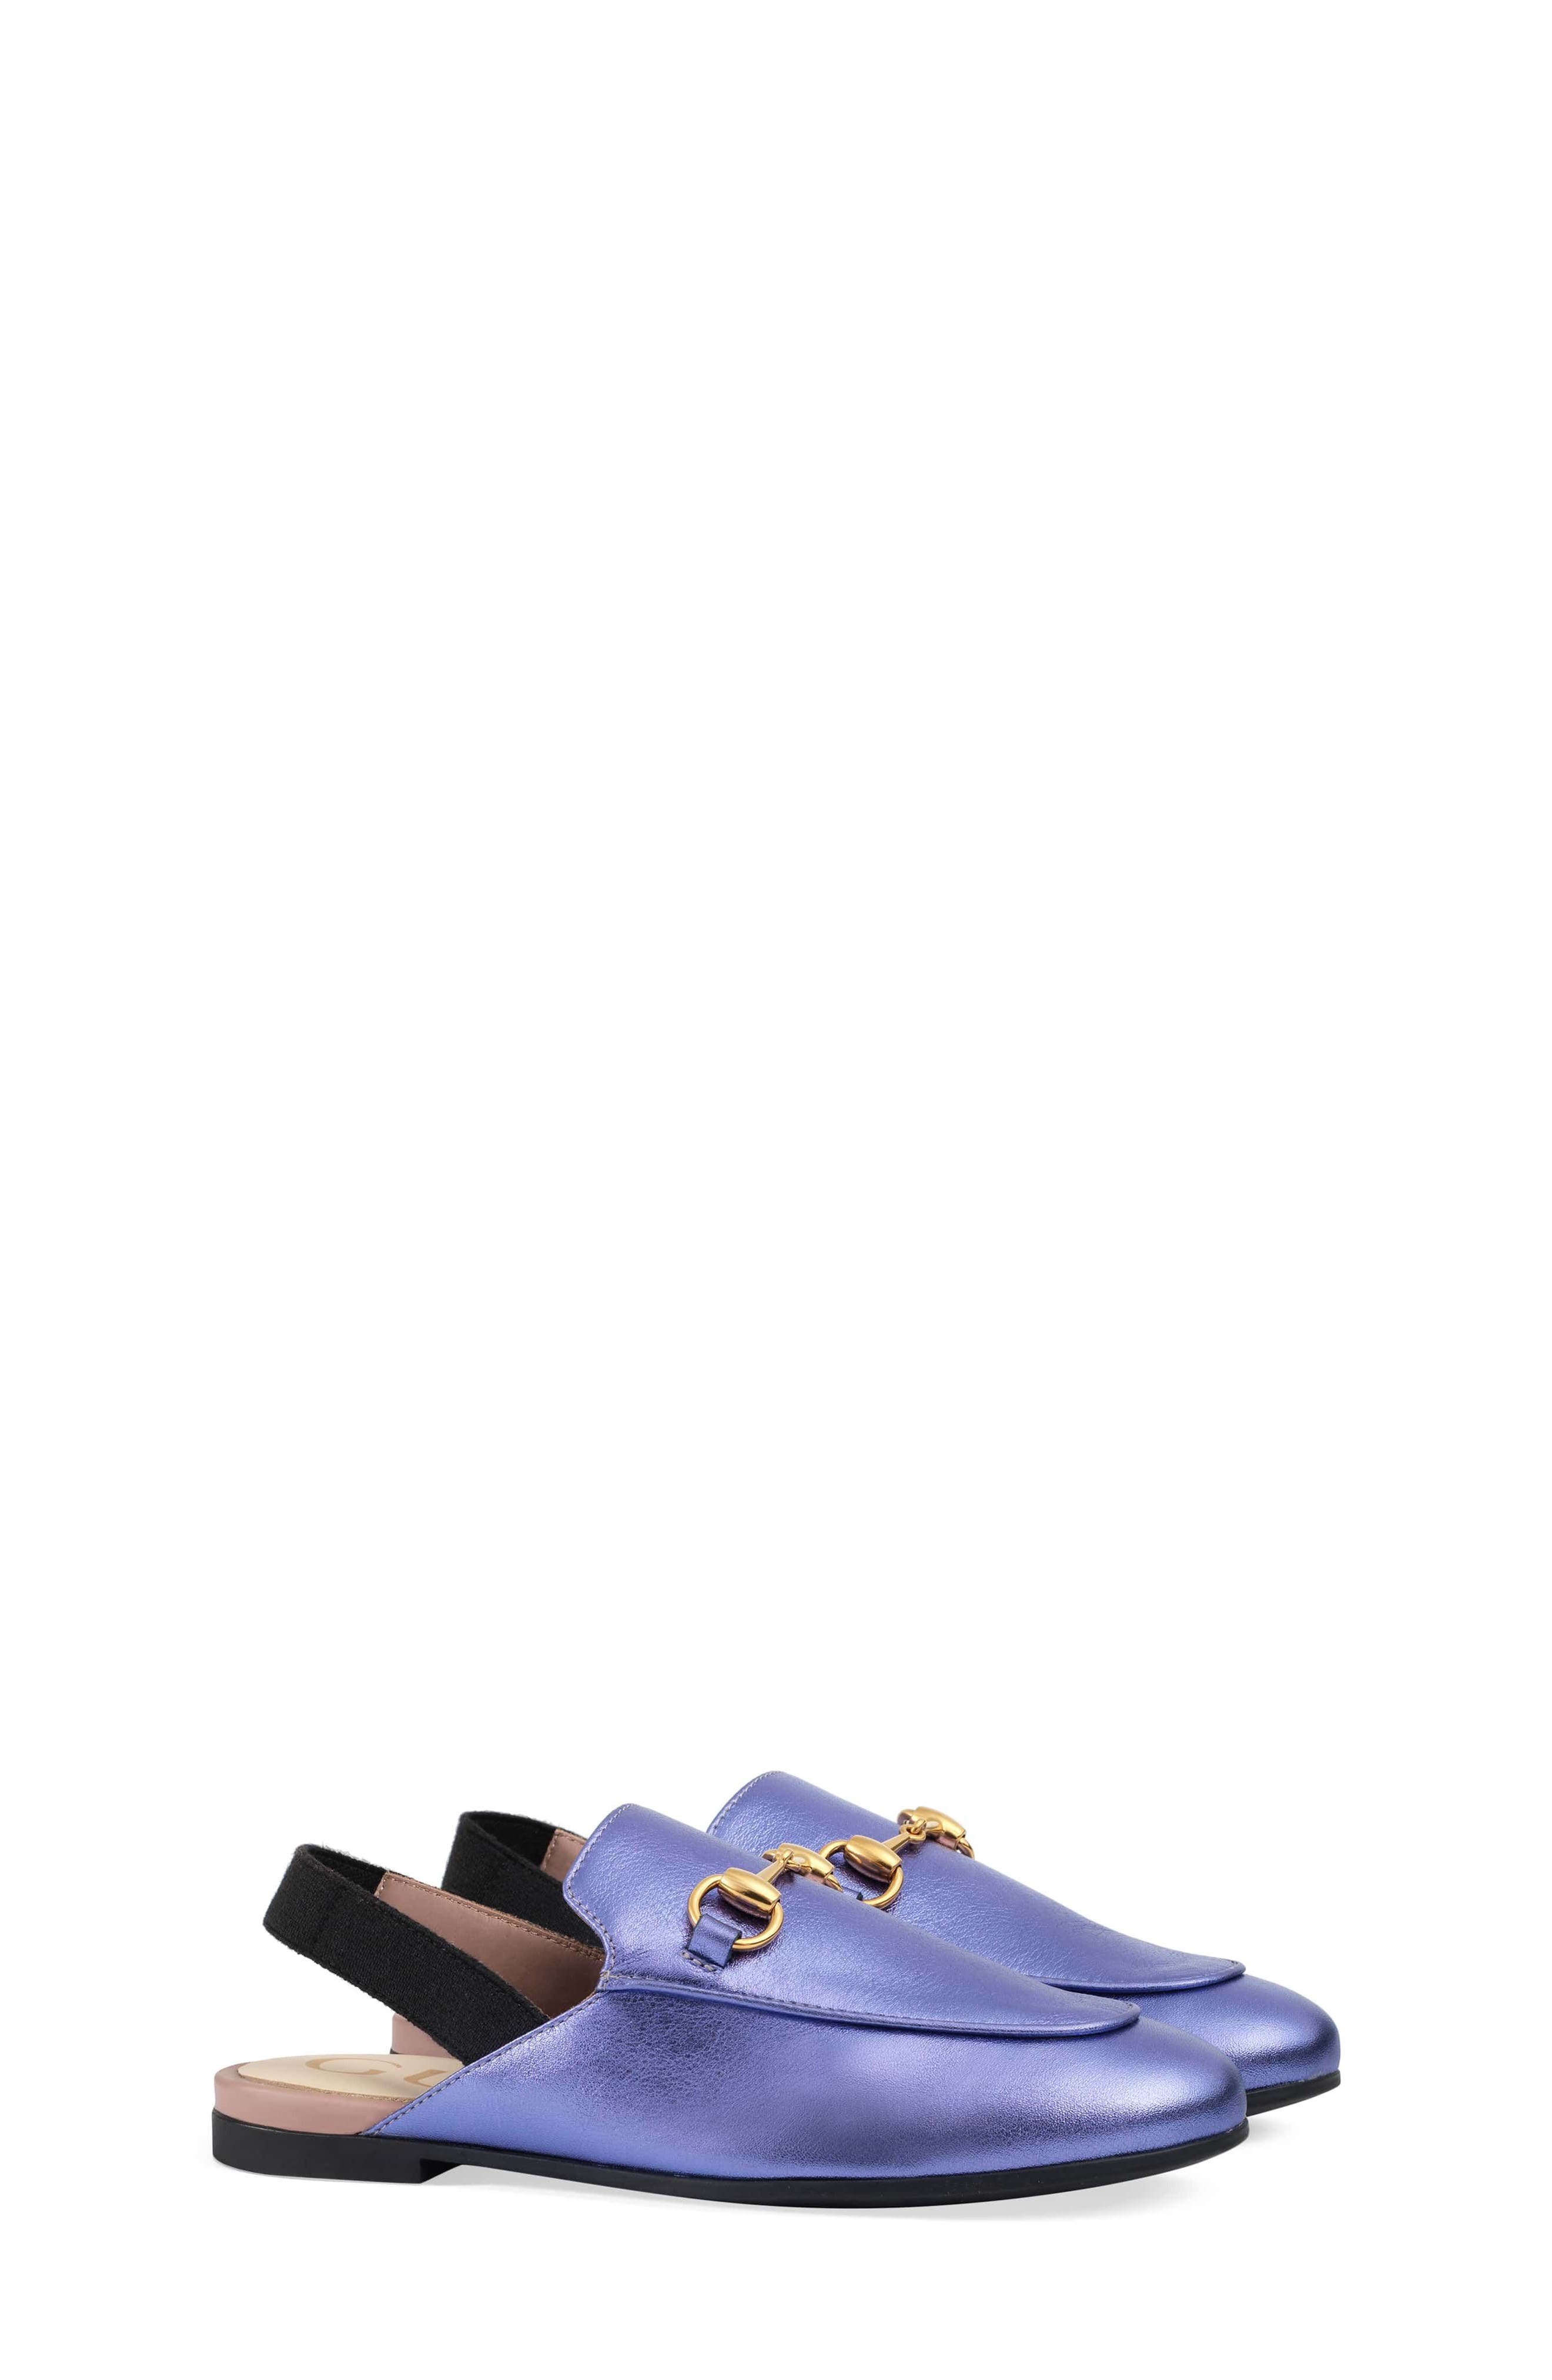 Princetown Loafer Mule,                         Main,                         color, Light Purple/ Black